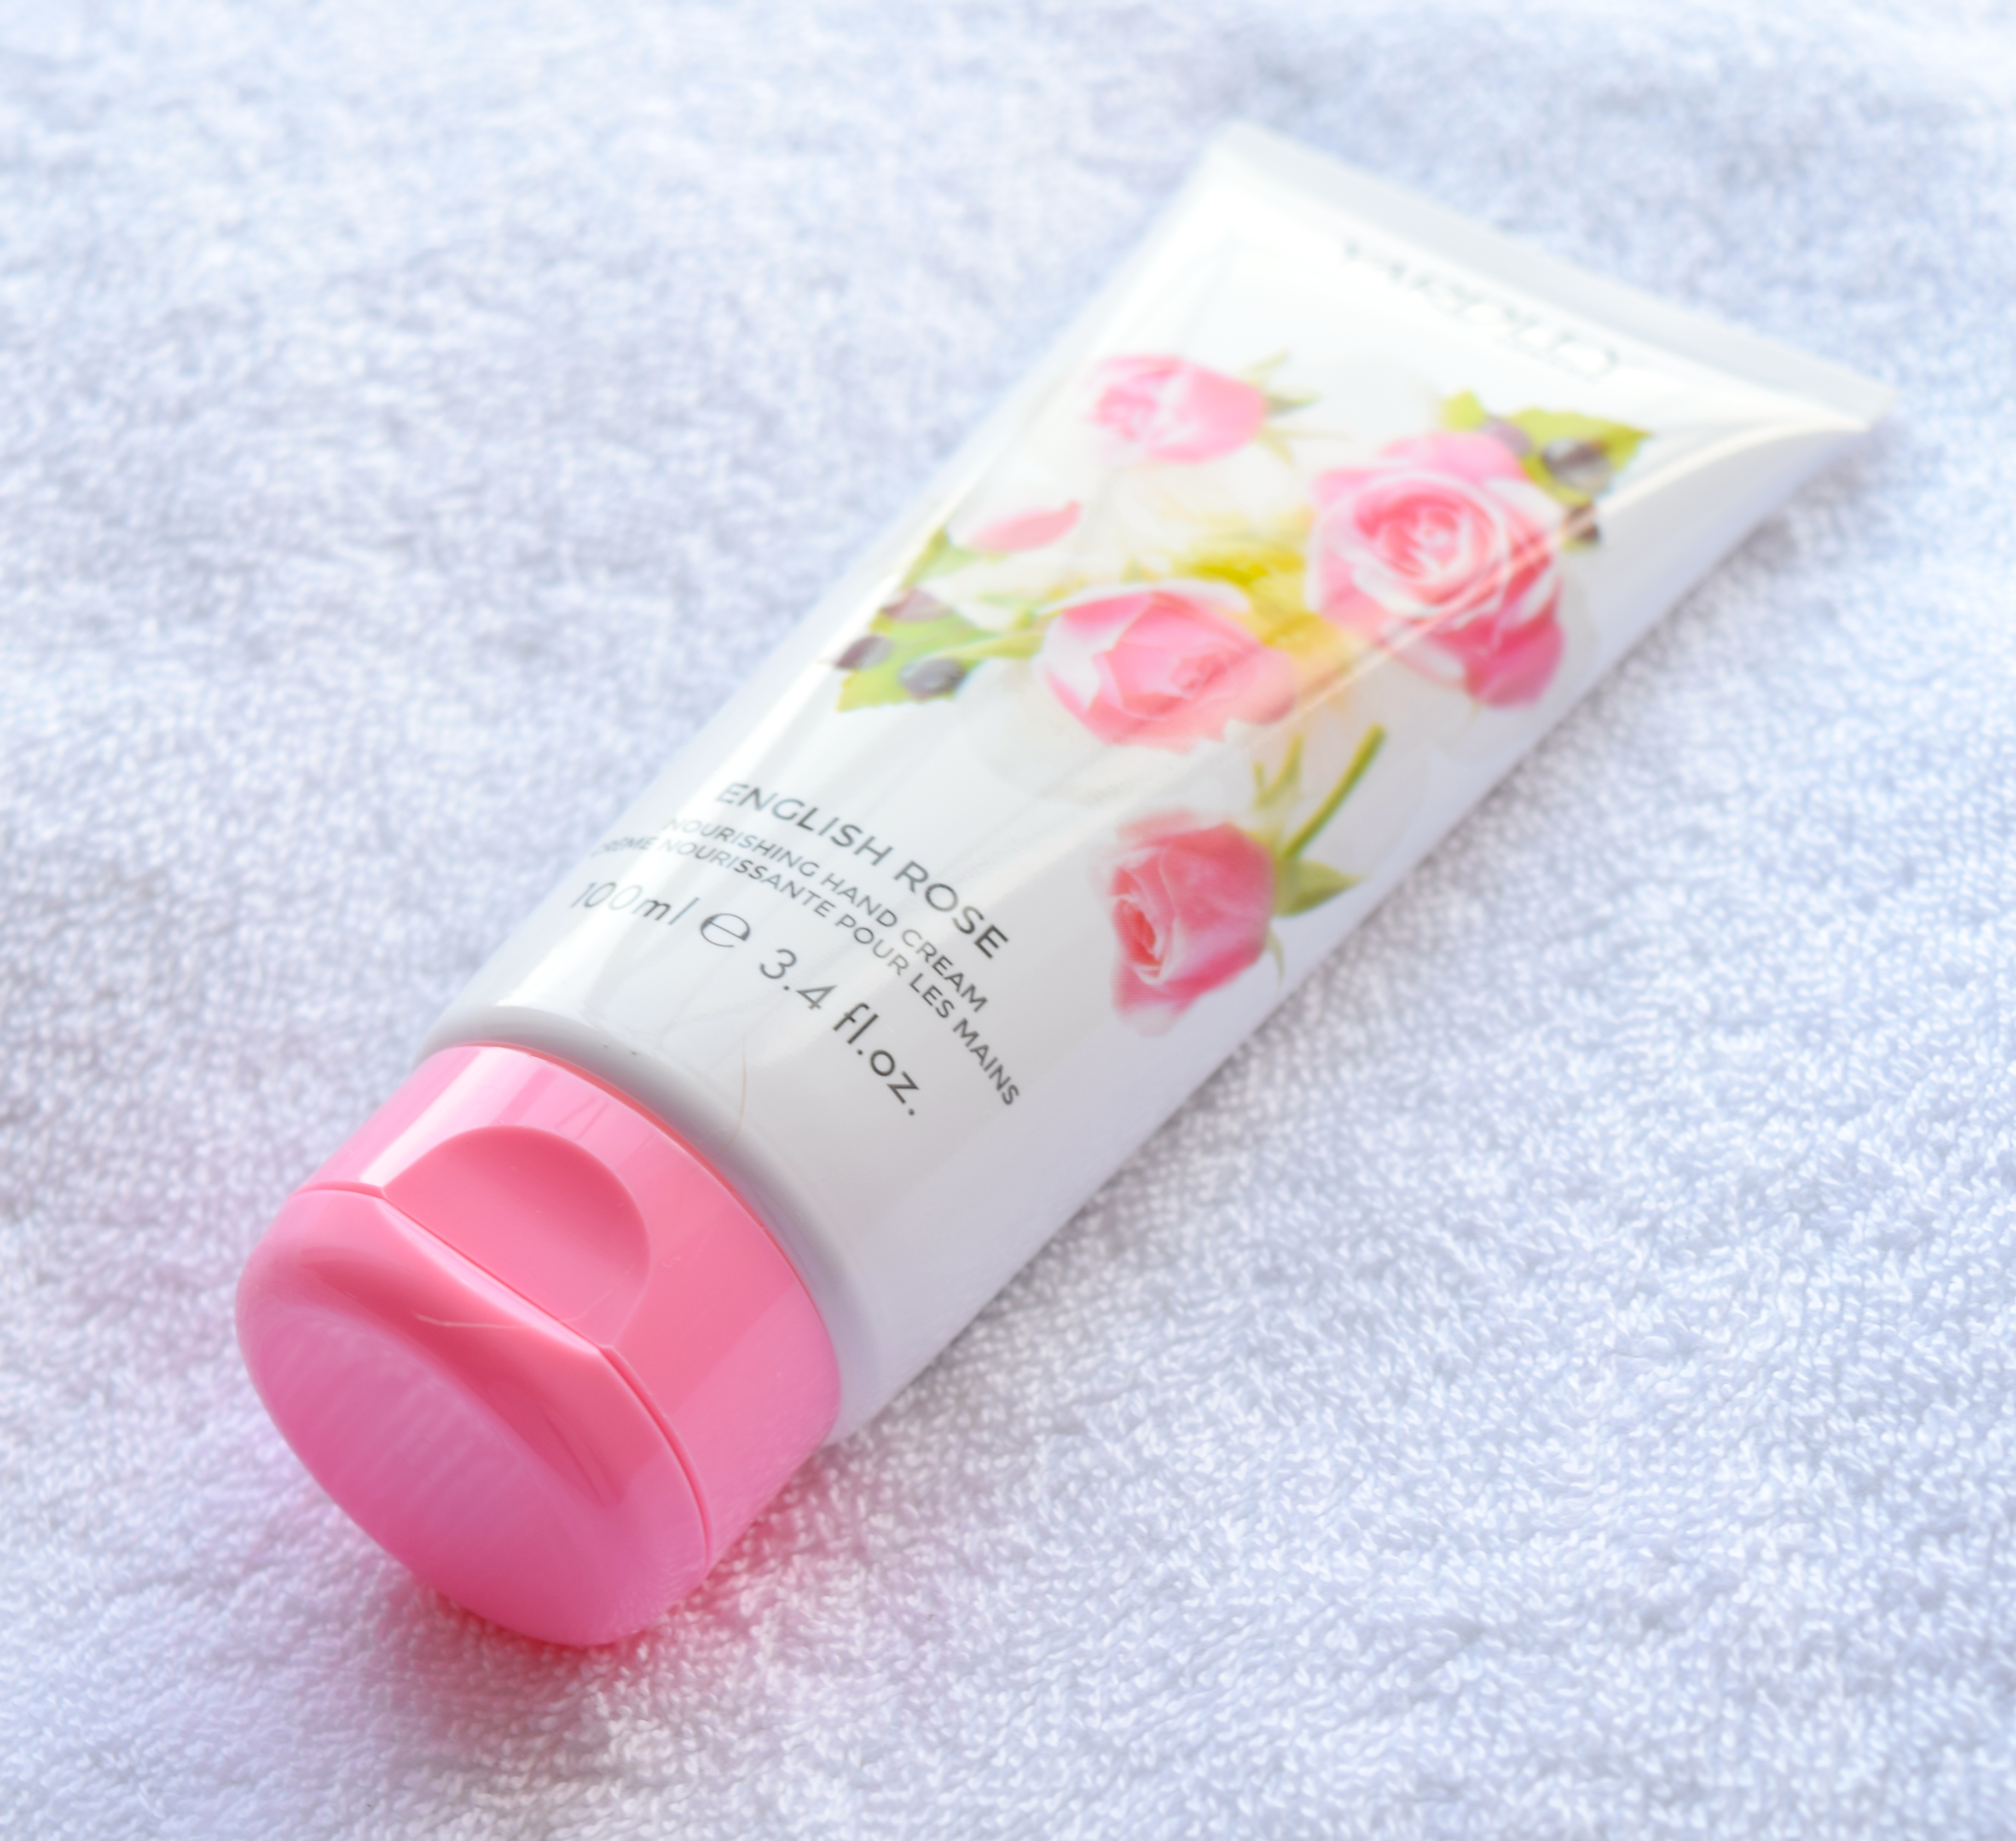 Yardley Rose Hand Cream